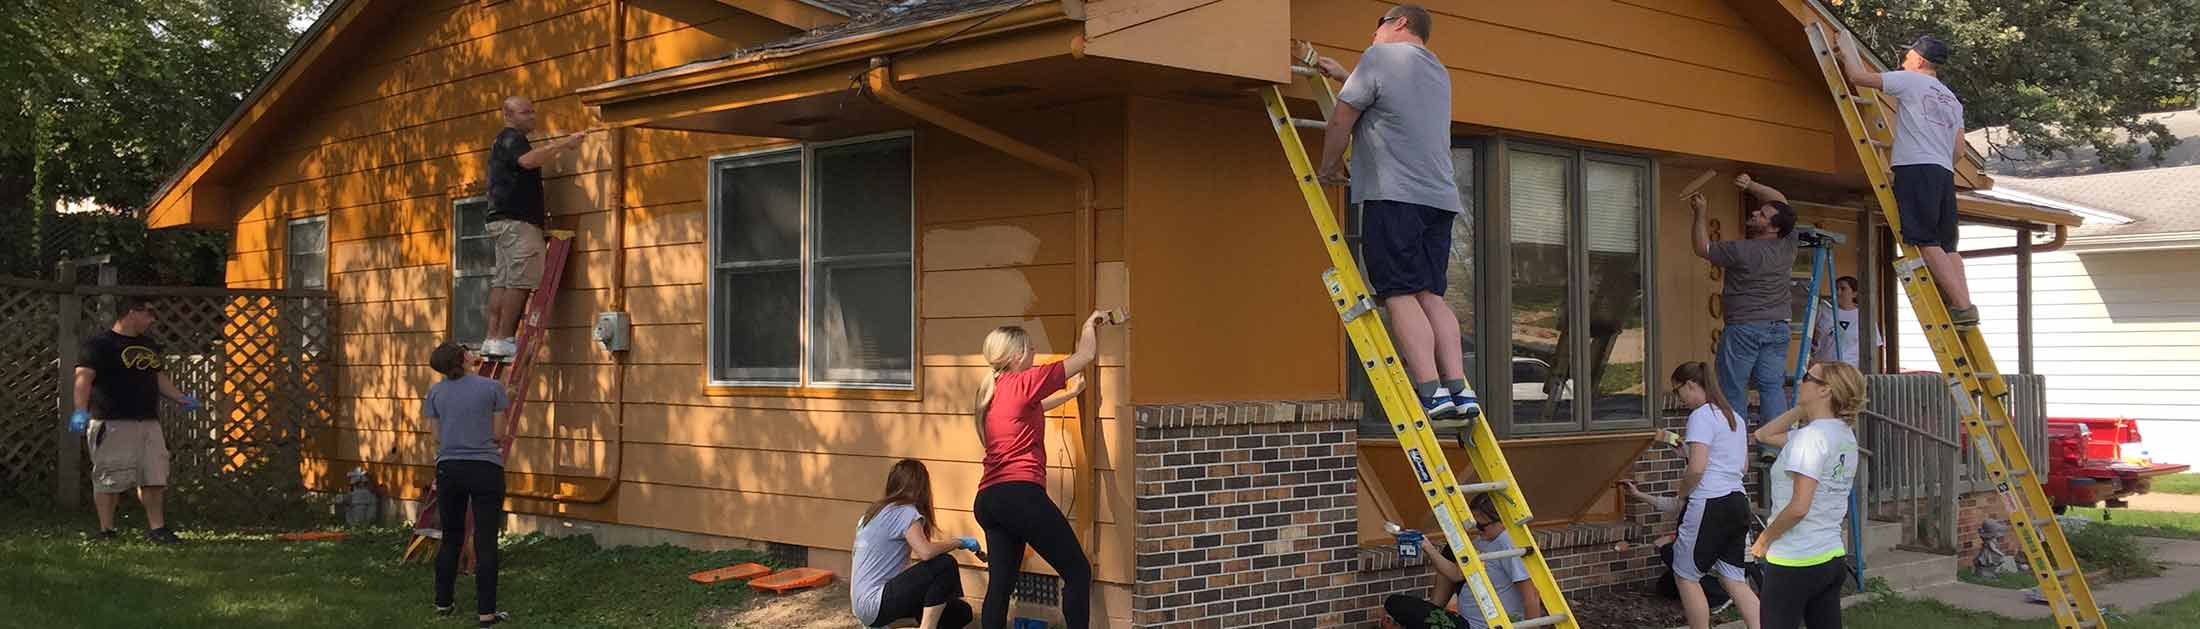 Employees volunteering in the Des Moines community